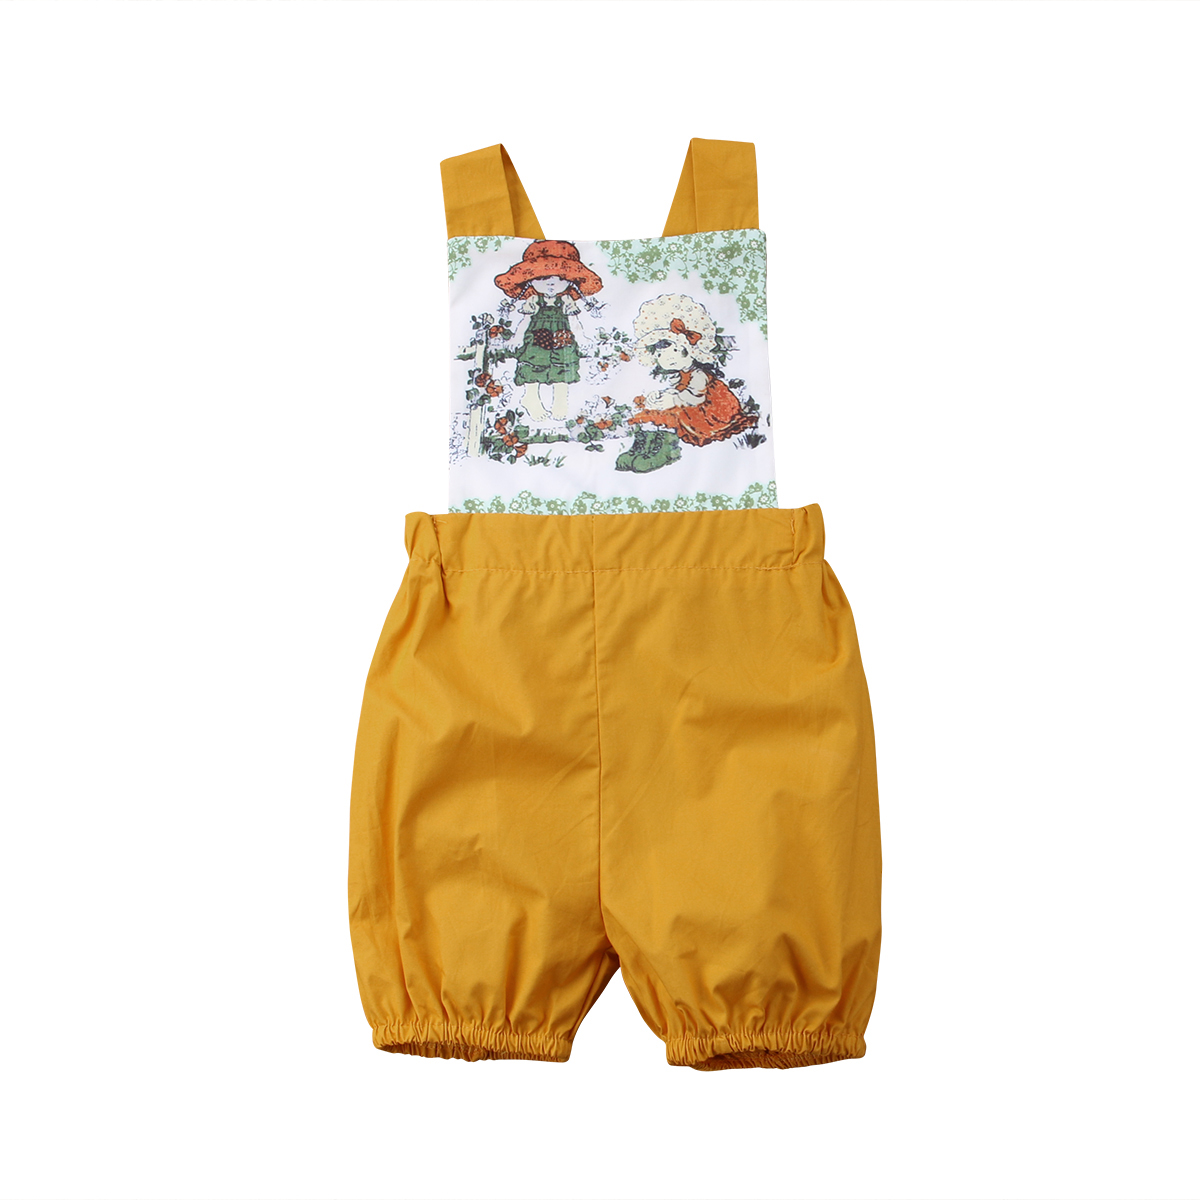 Soft cotton Newborn Kids Baby Girls Clothes Floral Outfits Set Sleevelsee Yellow Lace elasticatedJumpsuit Romper Playsuit